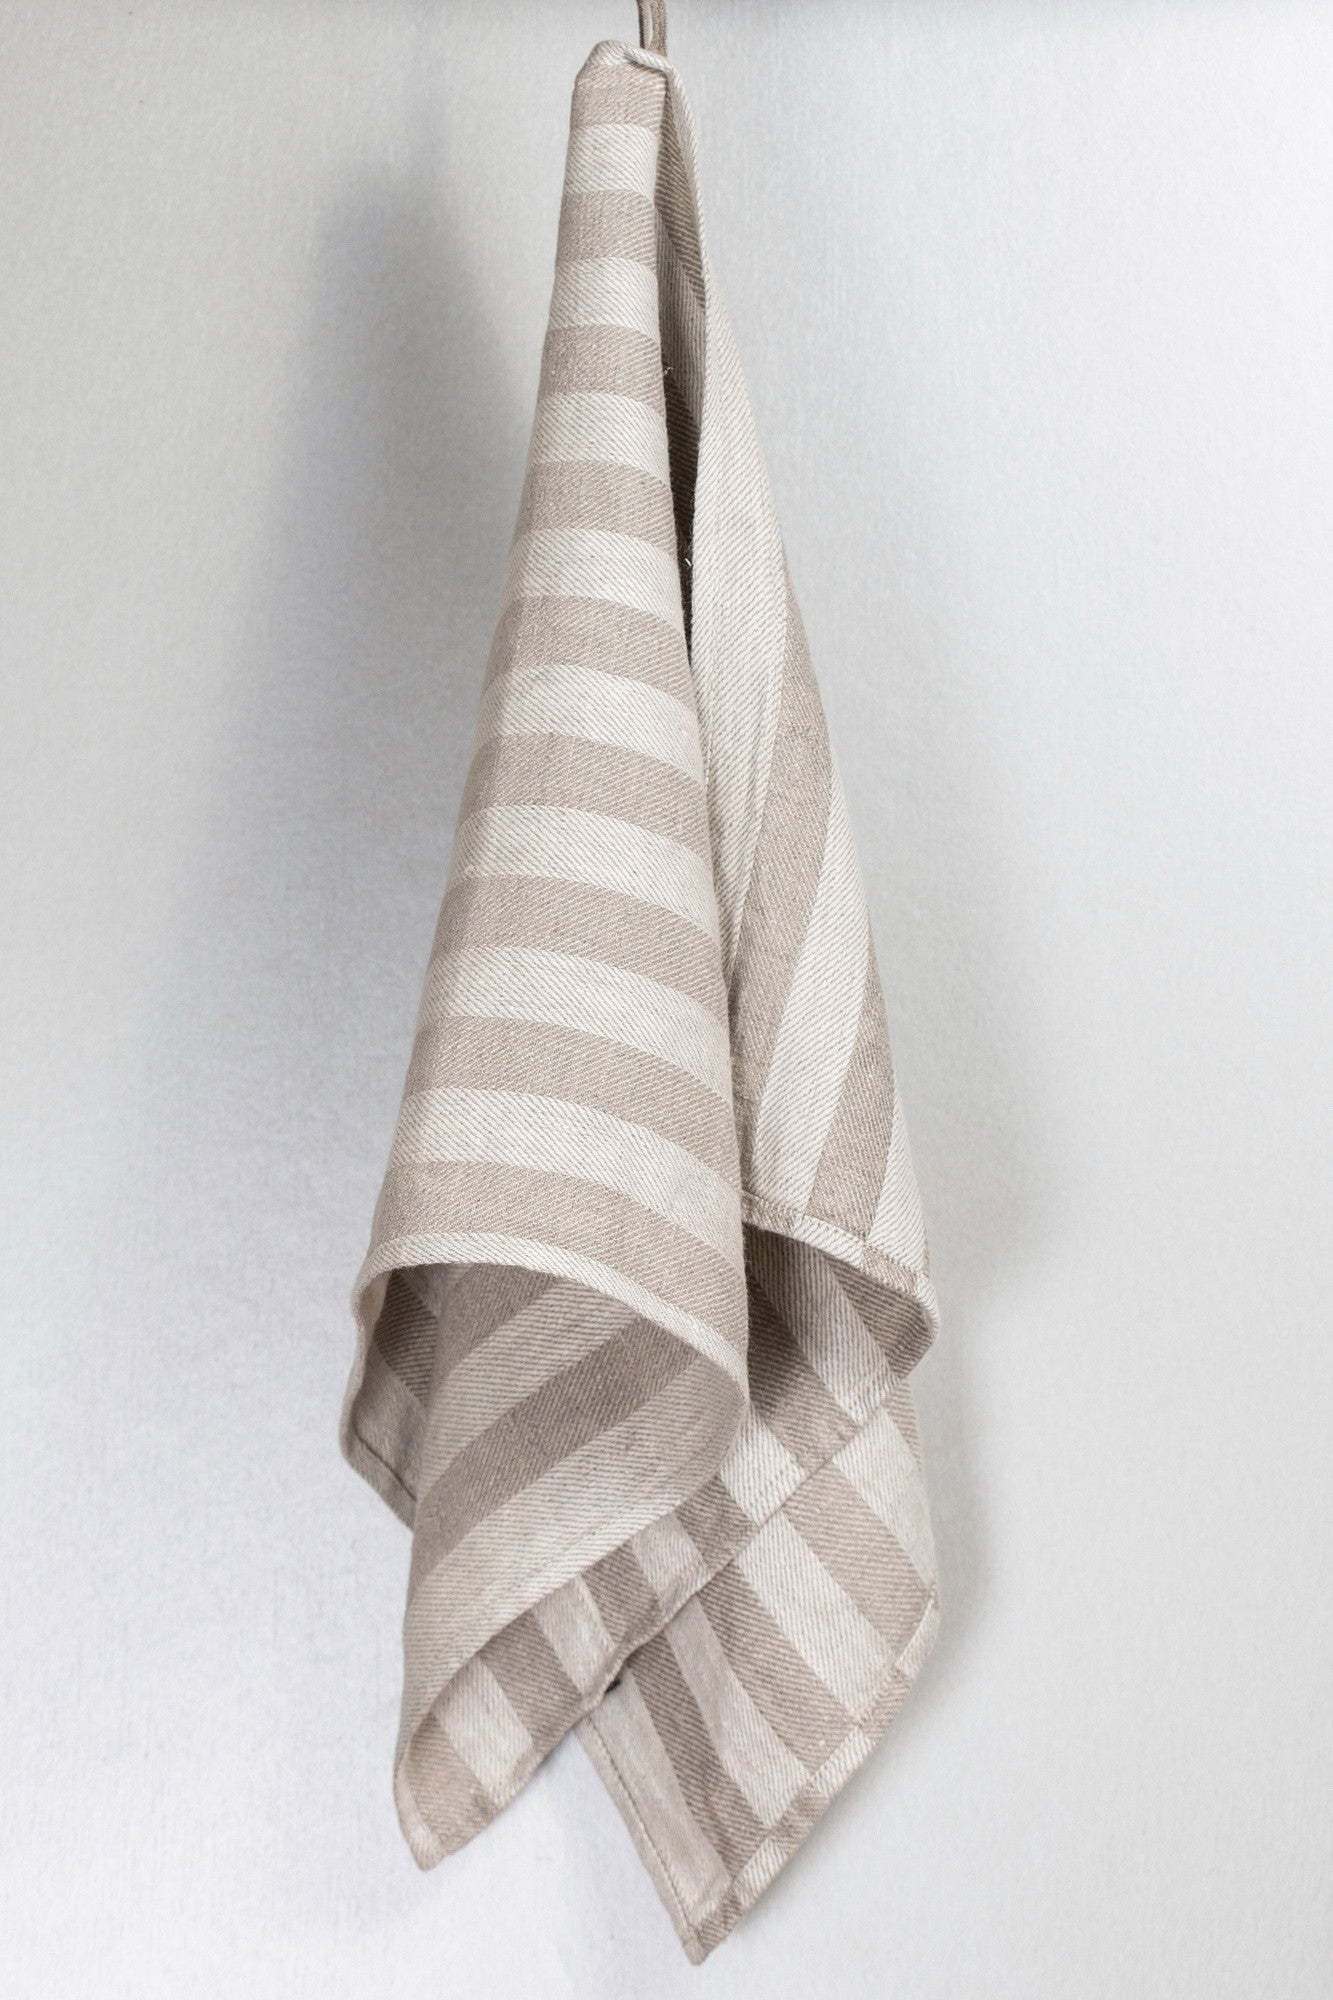 BLESS LINEN Jacquard Striped Pure Linen Flax Bath Towel, Grey/White - BLESS LINEN pure linen towels and blankets - 6